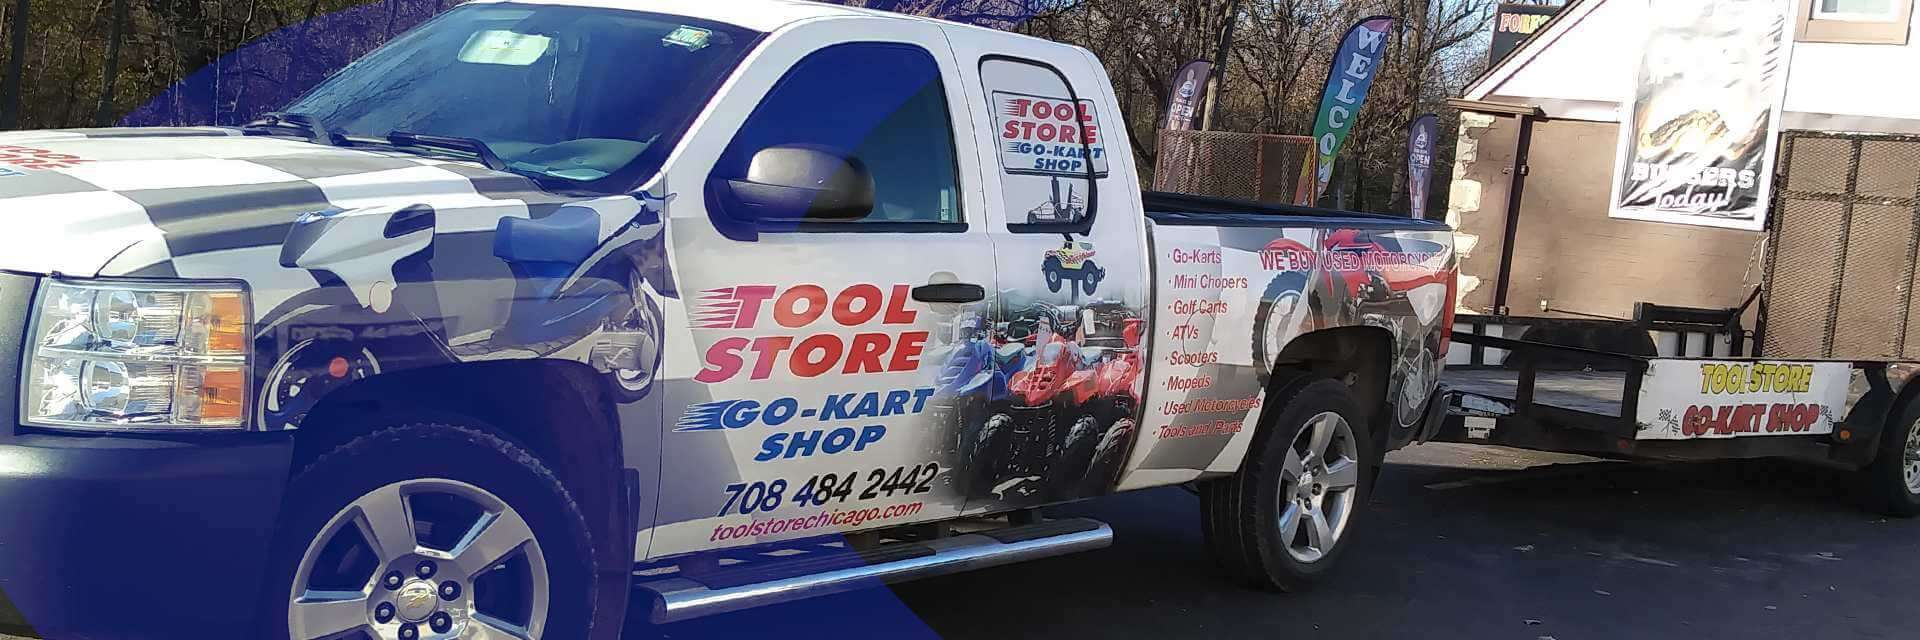 The Tool Store >> Tool Store Go Kart Shop Located In Forest View Il Shop